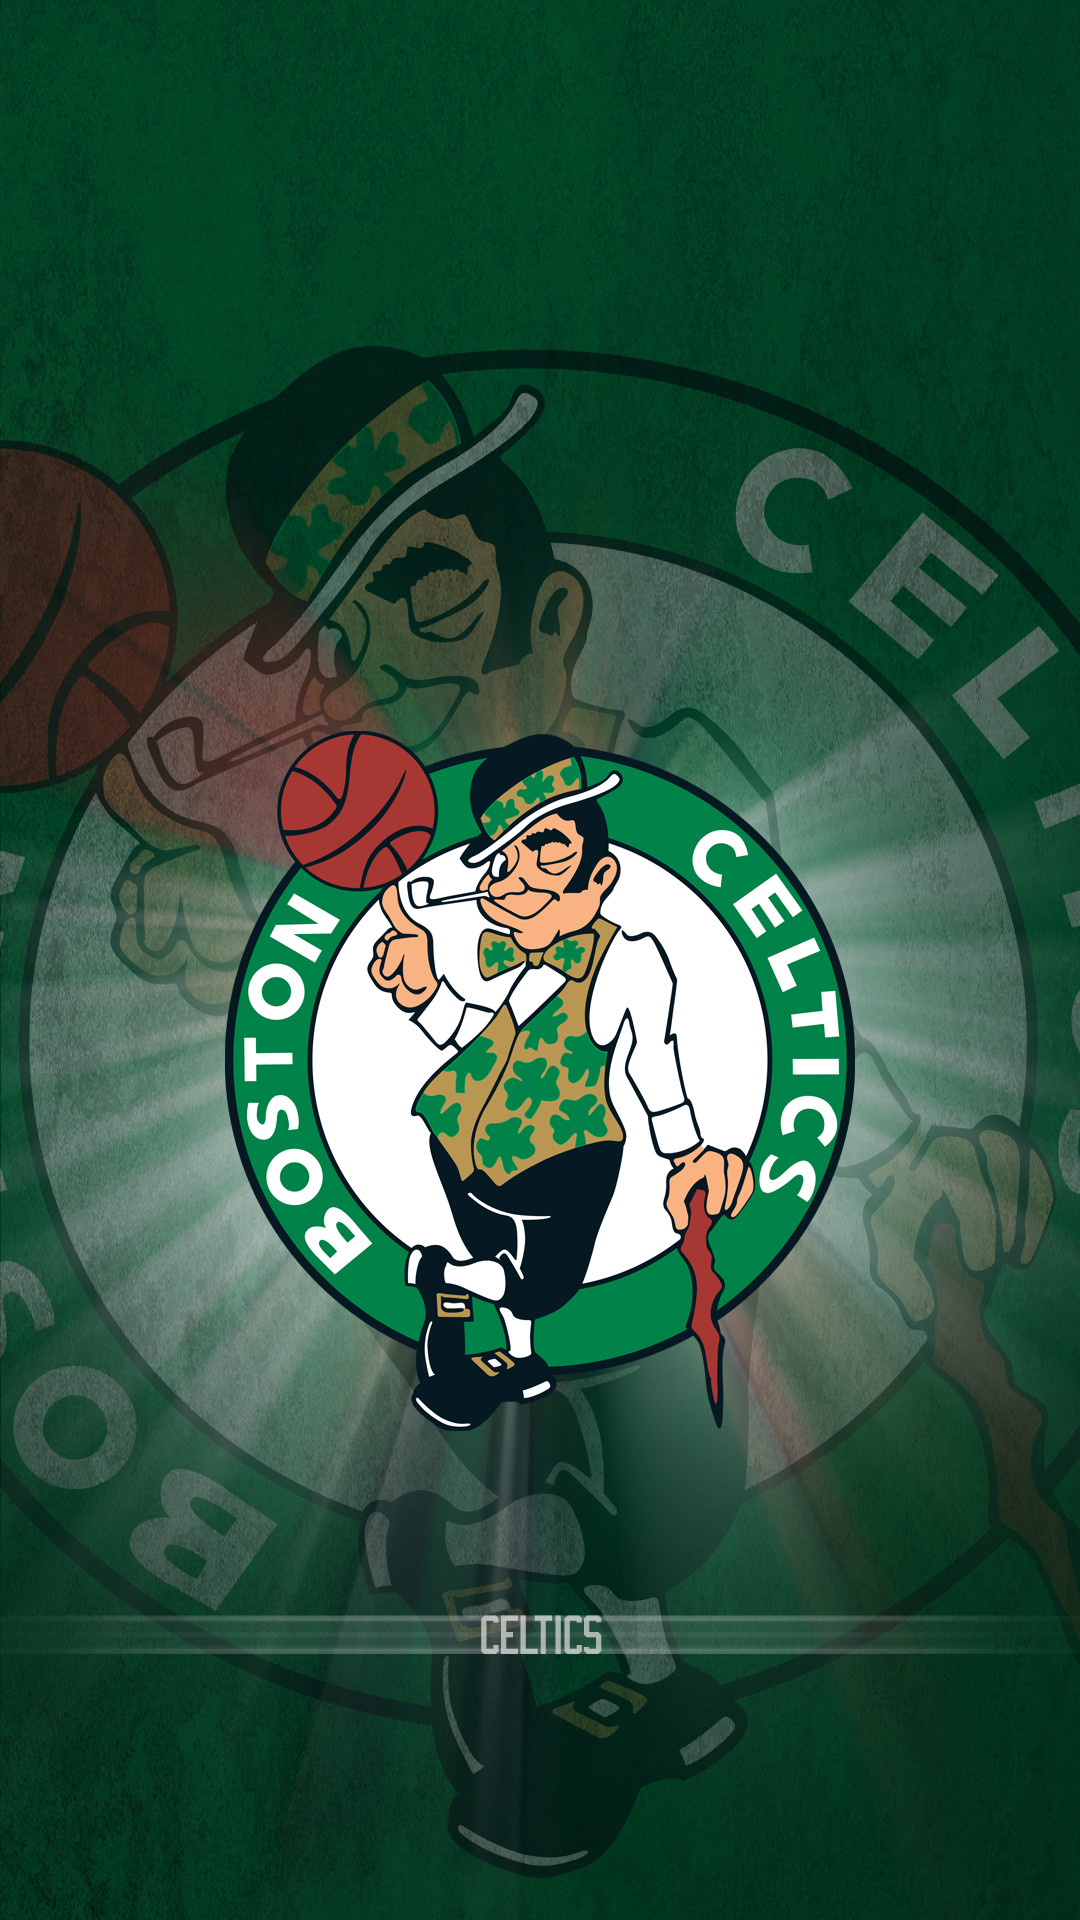 Boston Celtics Hd Wallpapers for iPhone